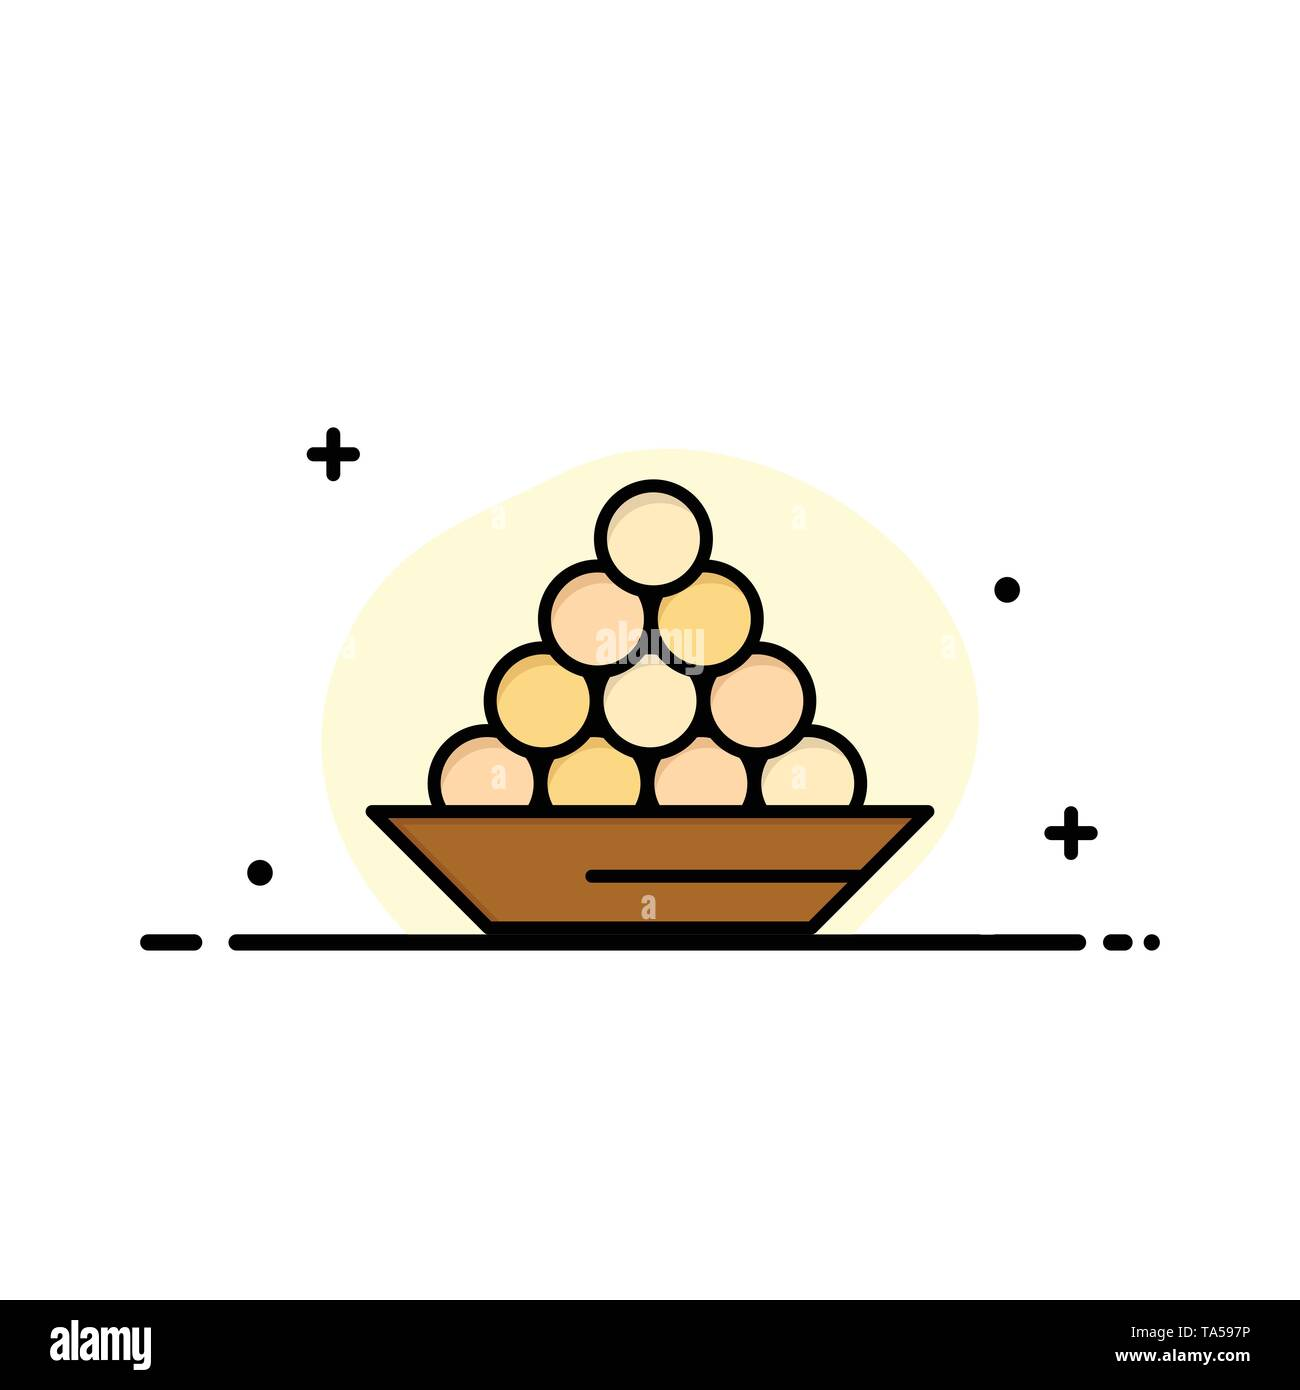 Bowl, Delicacy, Dessert, Indian, Laddu, Sweet, Treat  Business Flat Line Filled Icon Vector Banner Template - Stock Image